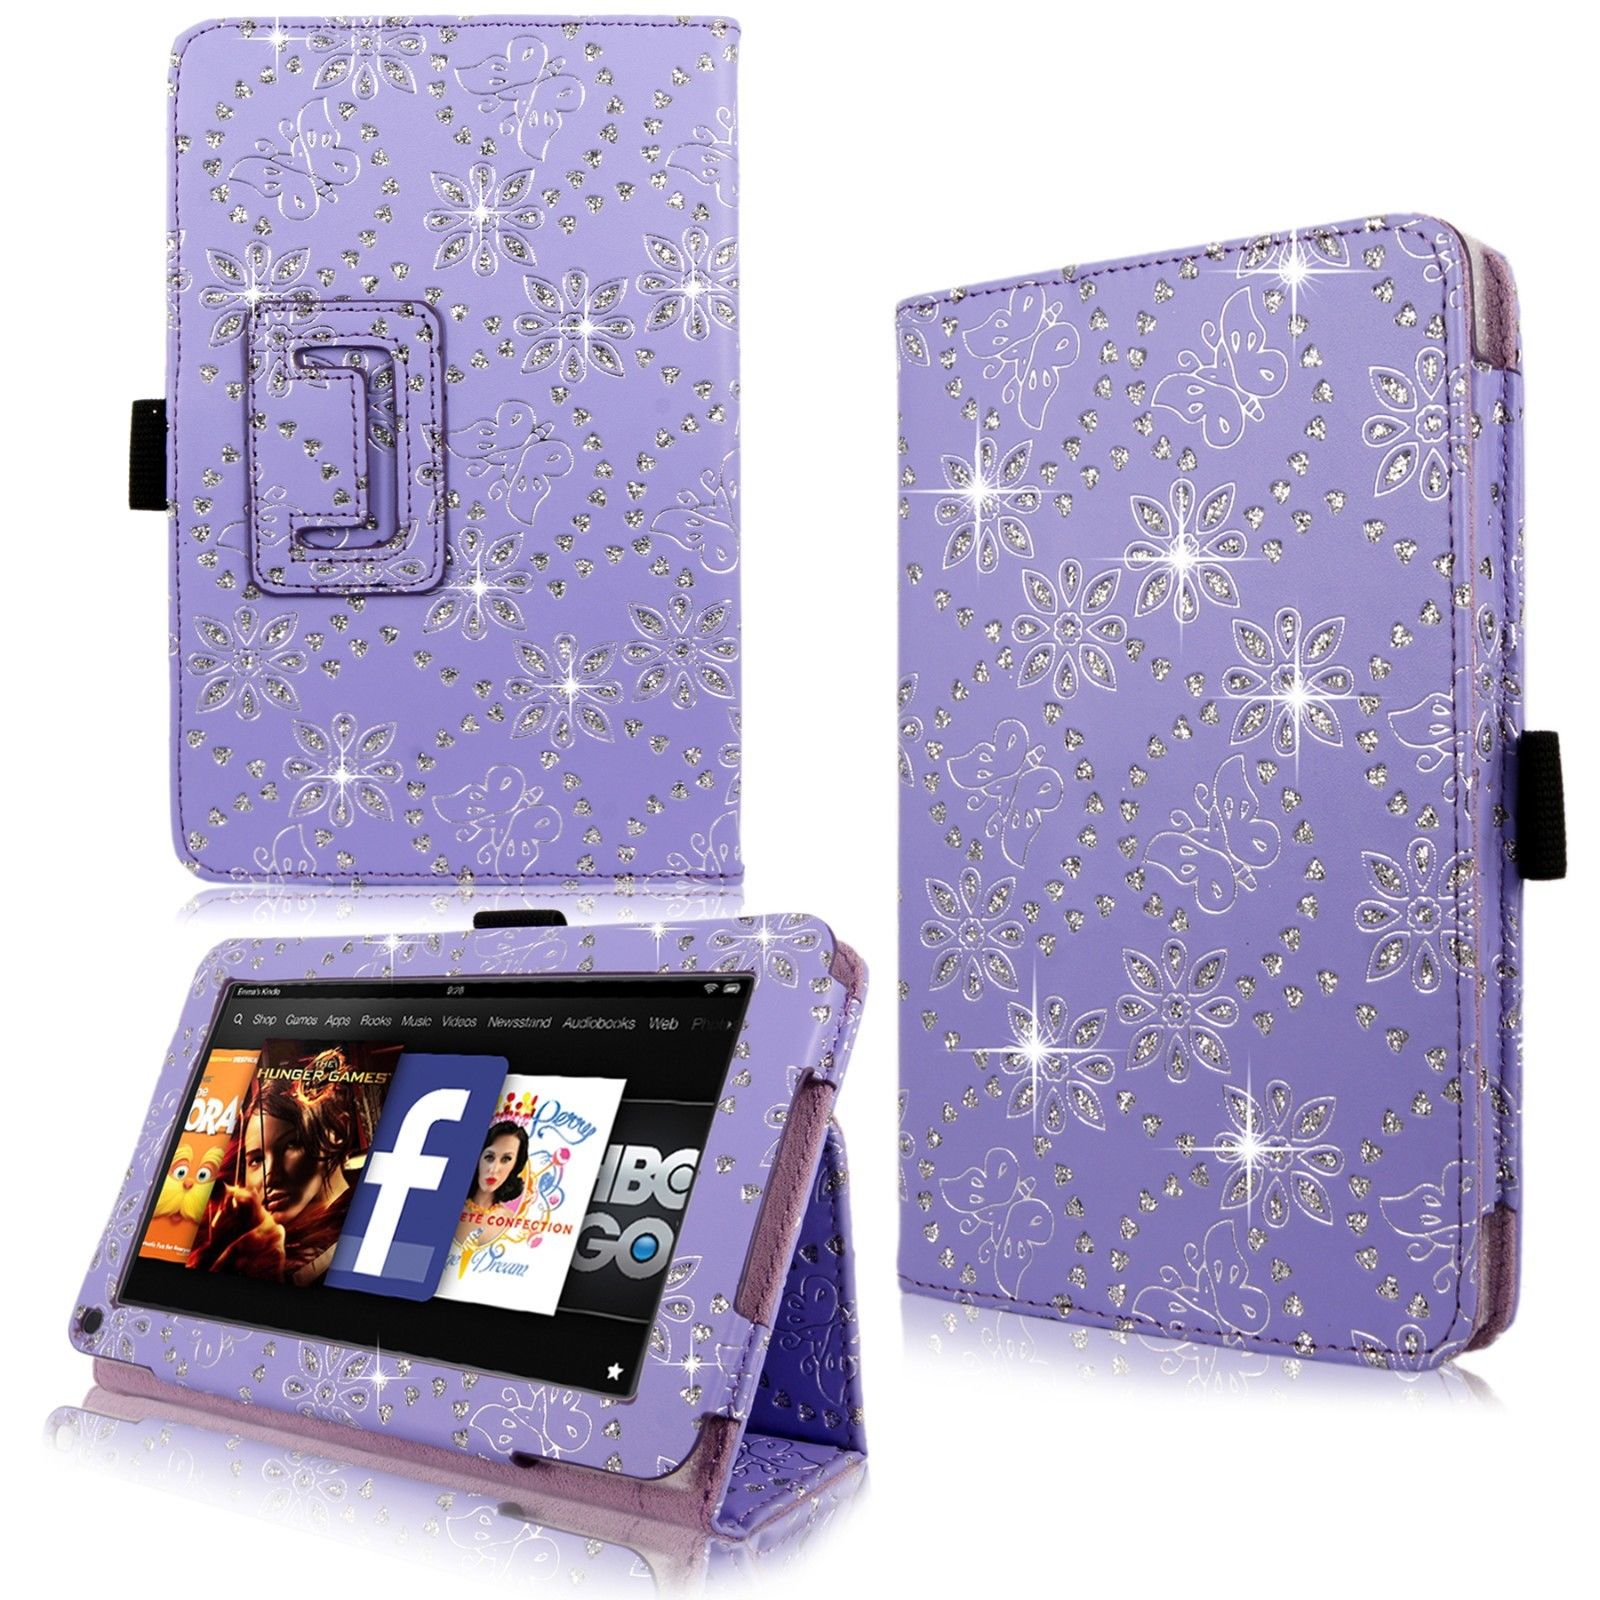 Bling diamond sparkly pu leather flip case cover for for Amazon casa